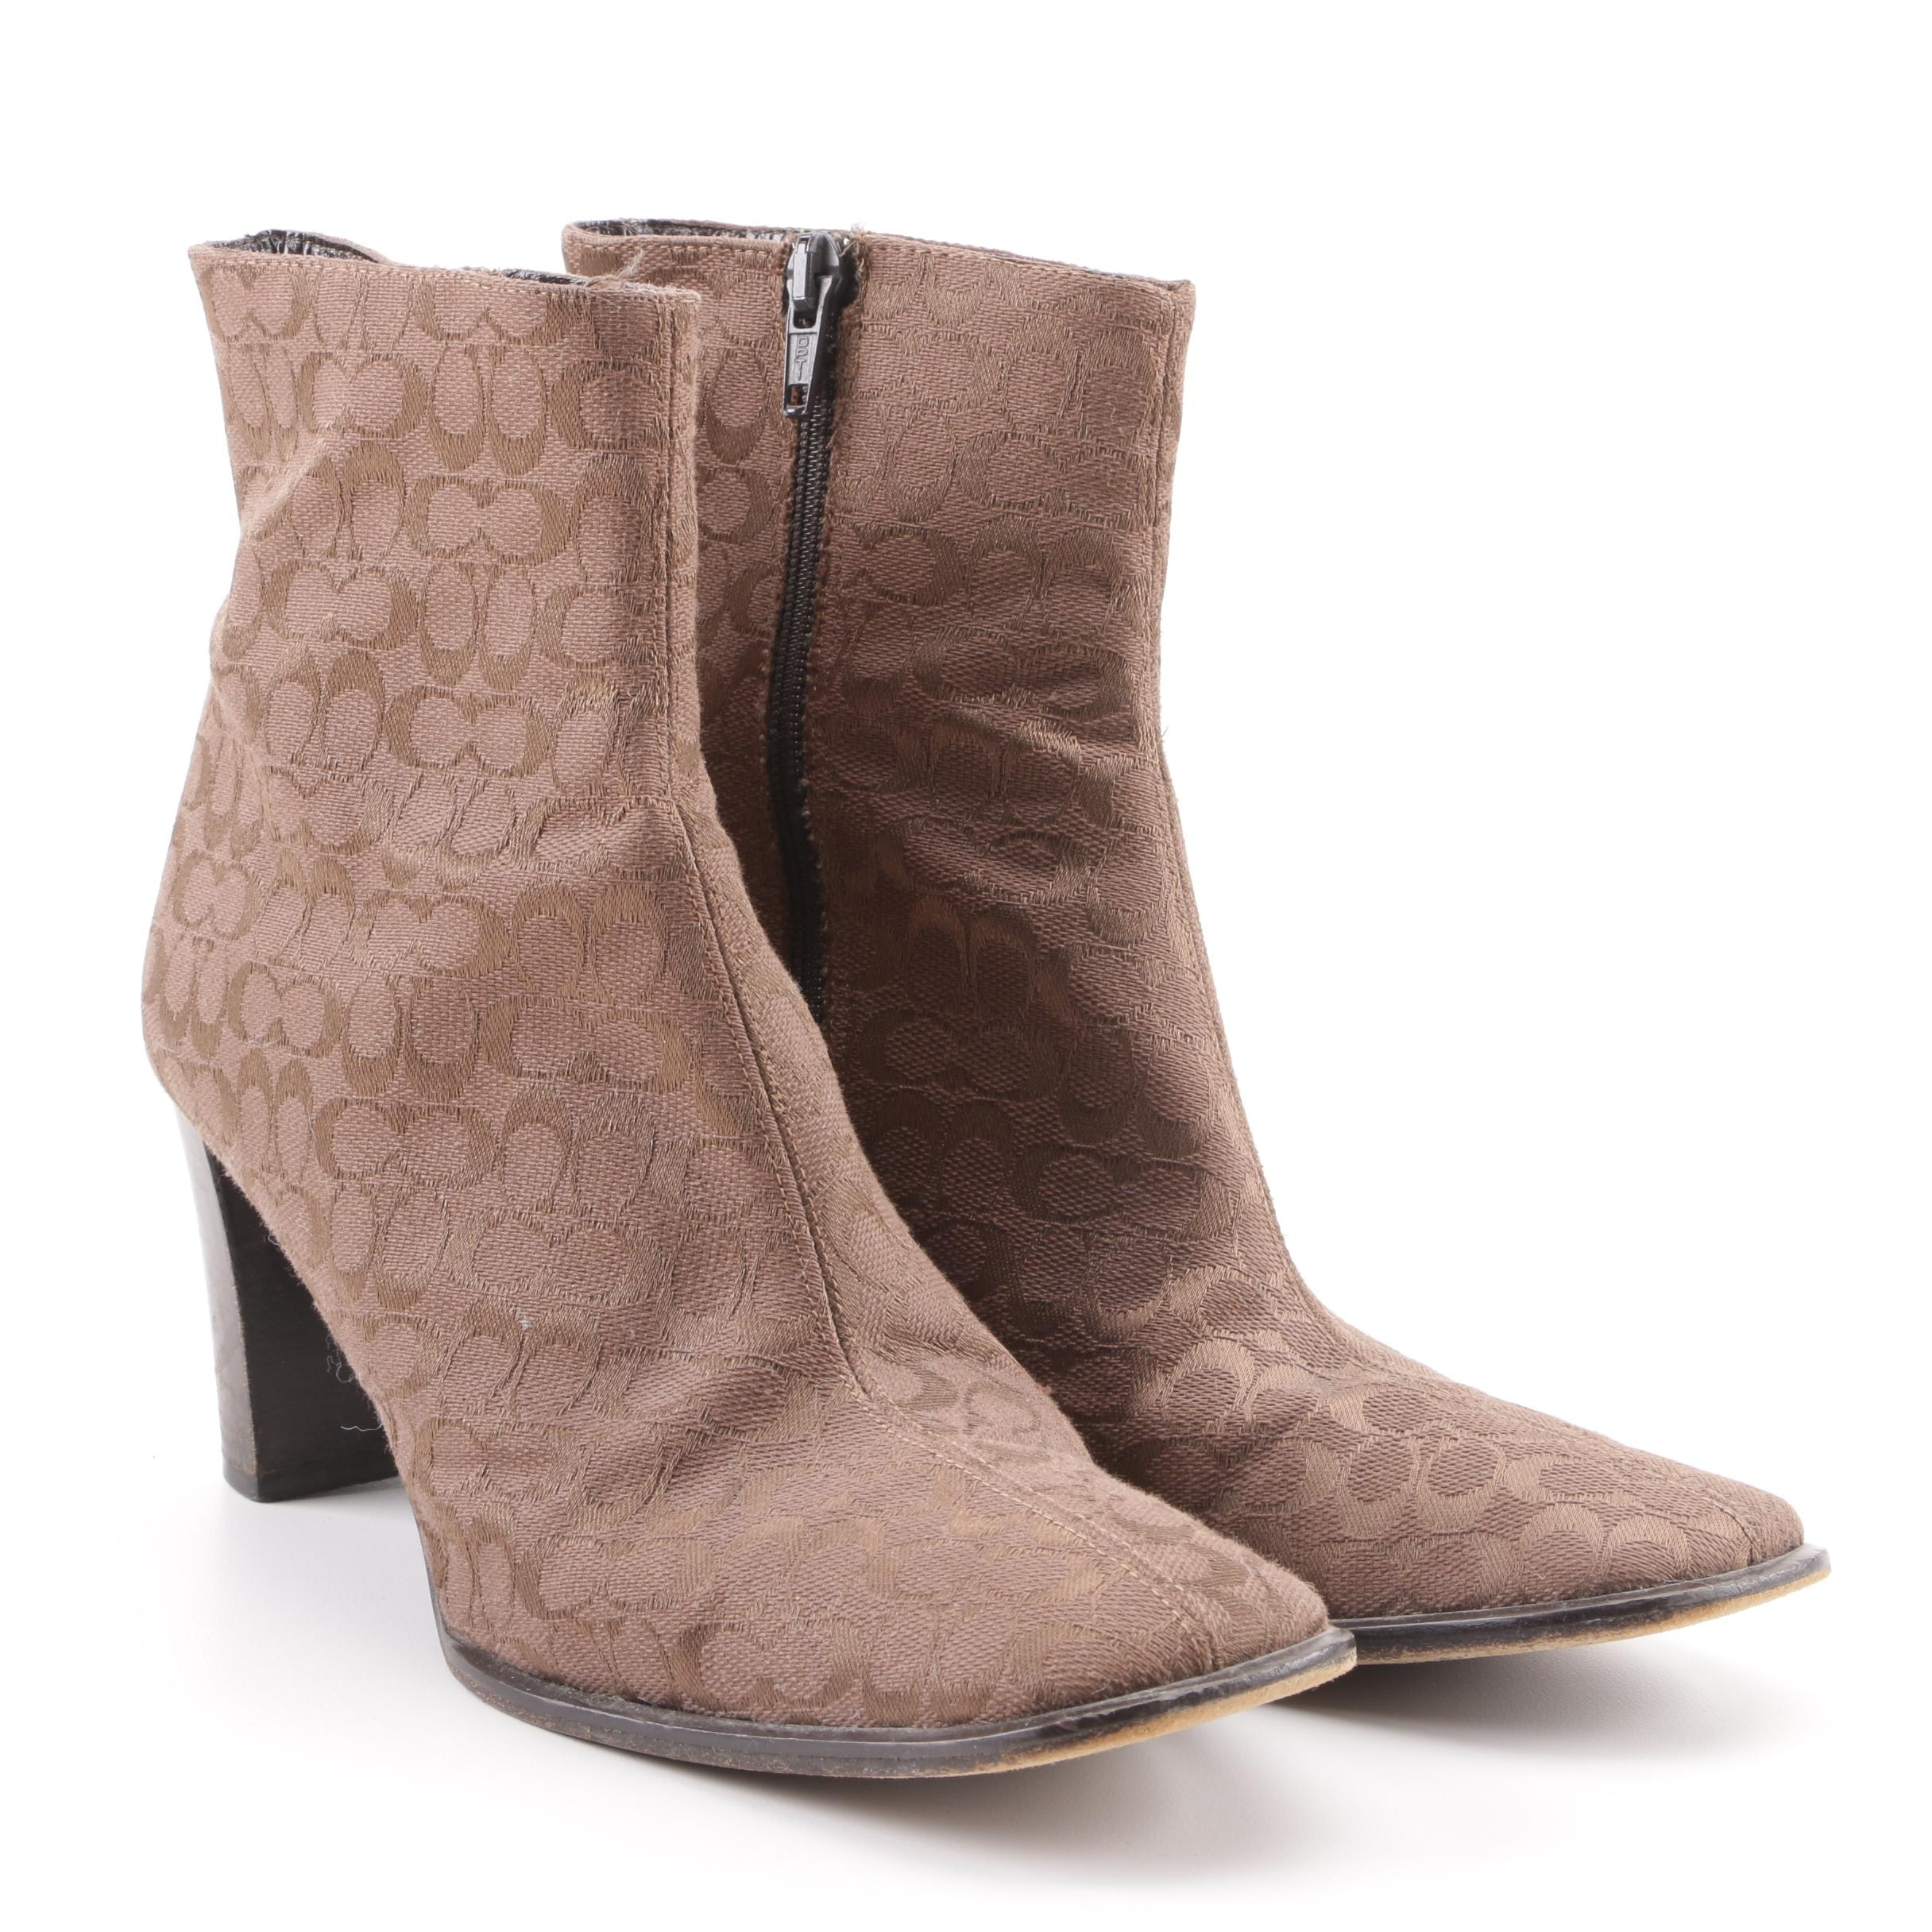 Women's Coach Brianna Light Brown Signature Canvas Ankle Boots